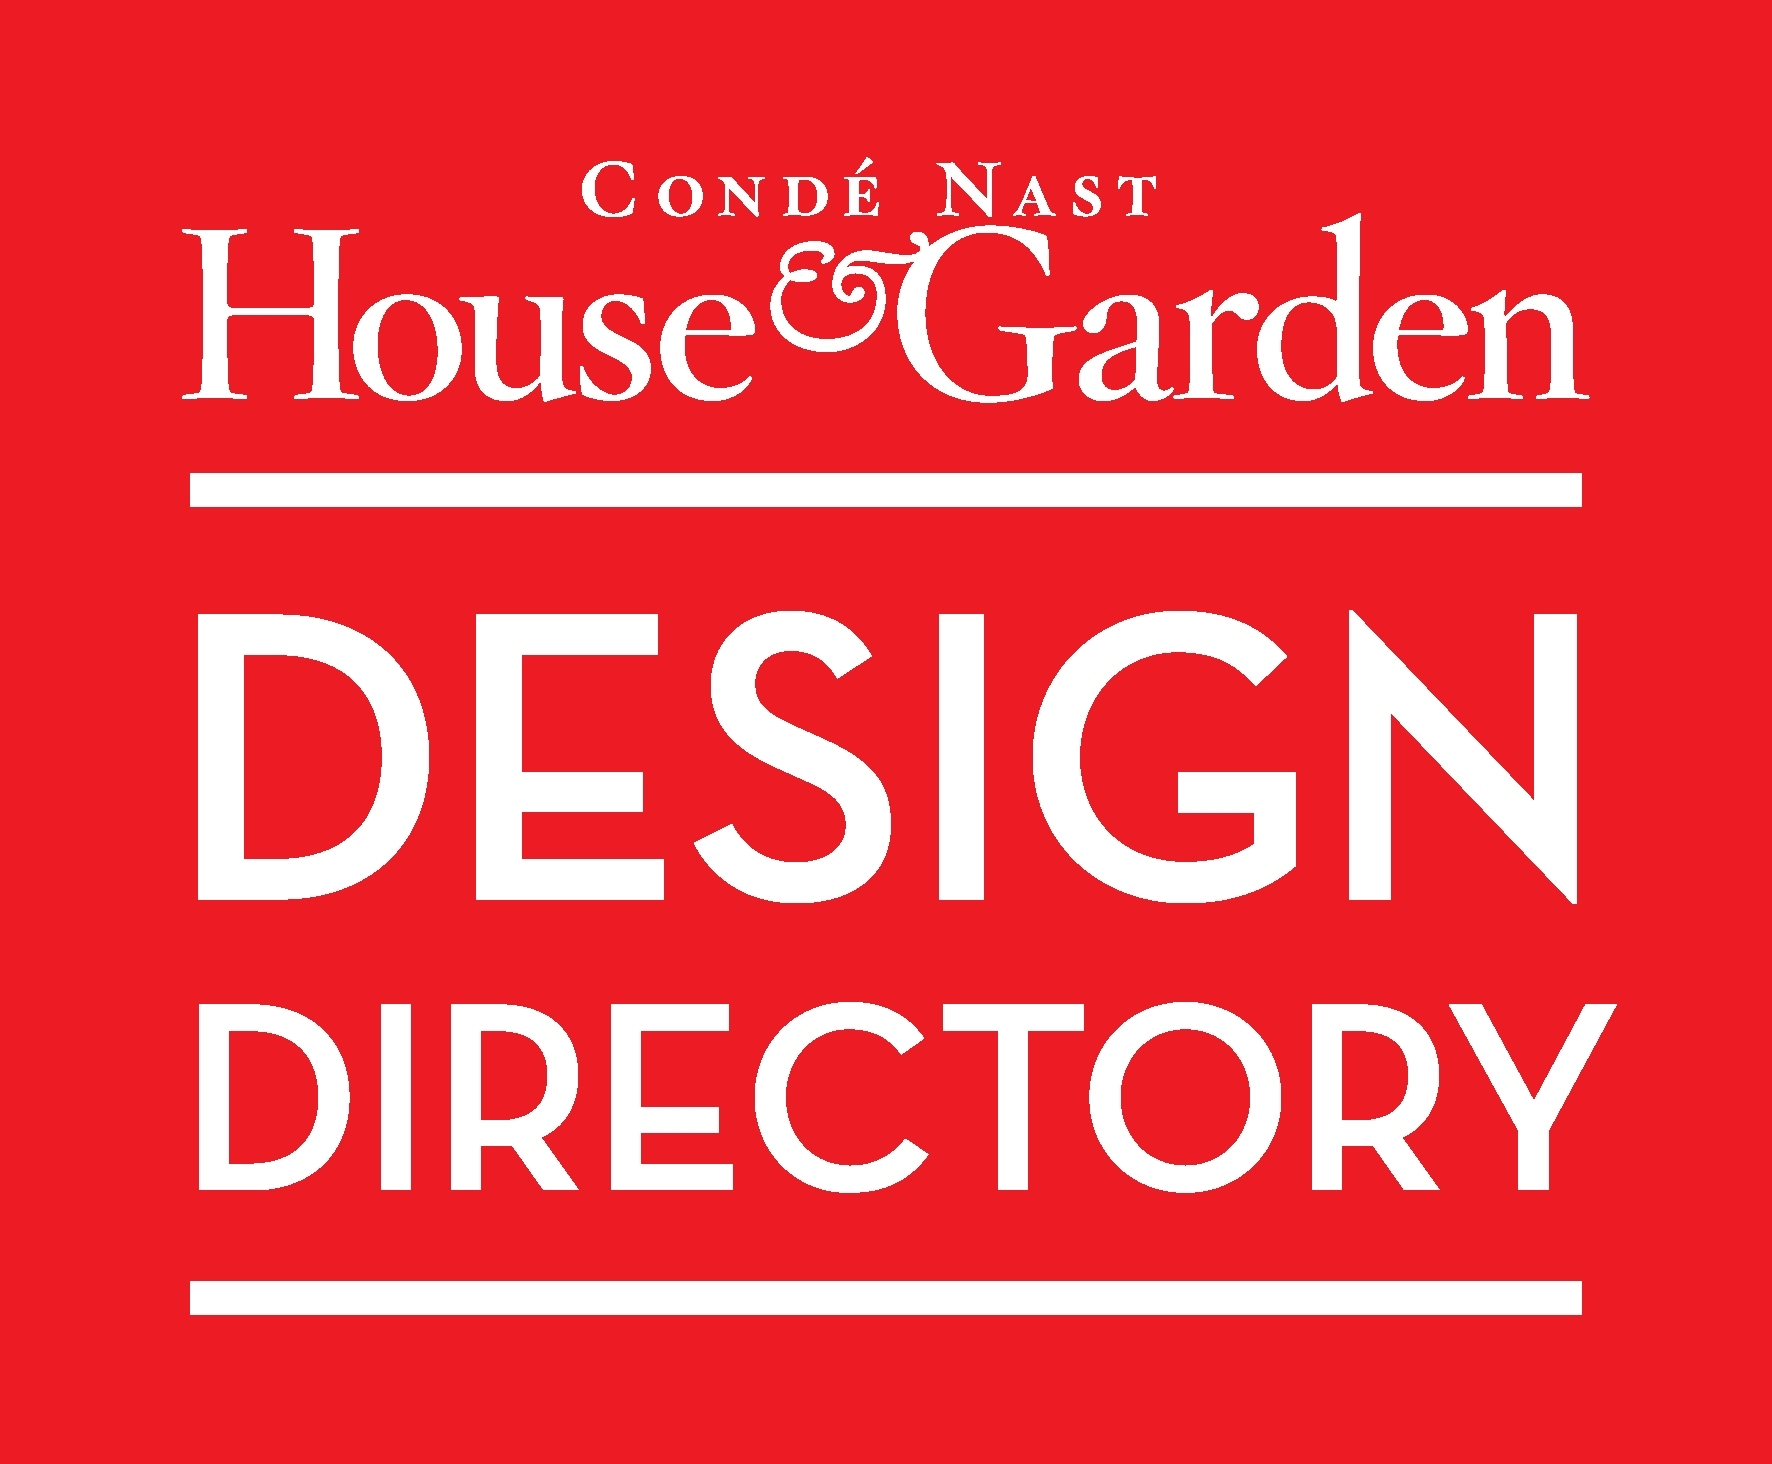 Design Directory | Independent Media pertaining to House And Garden Design Directory